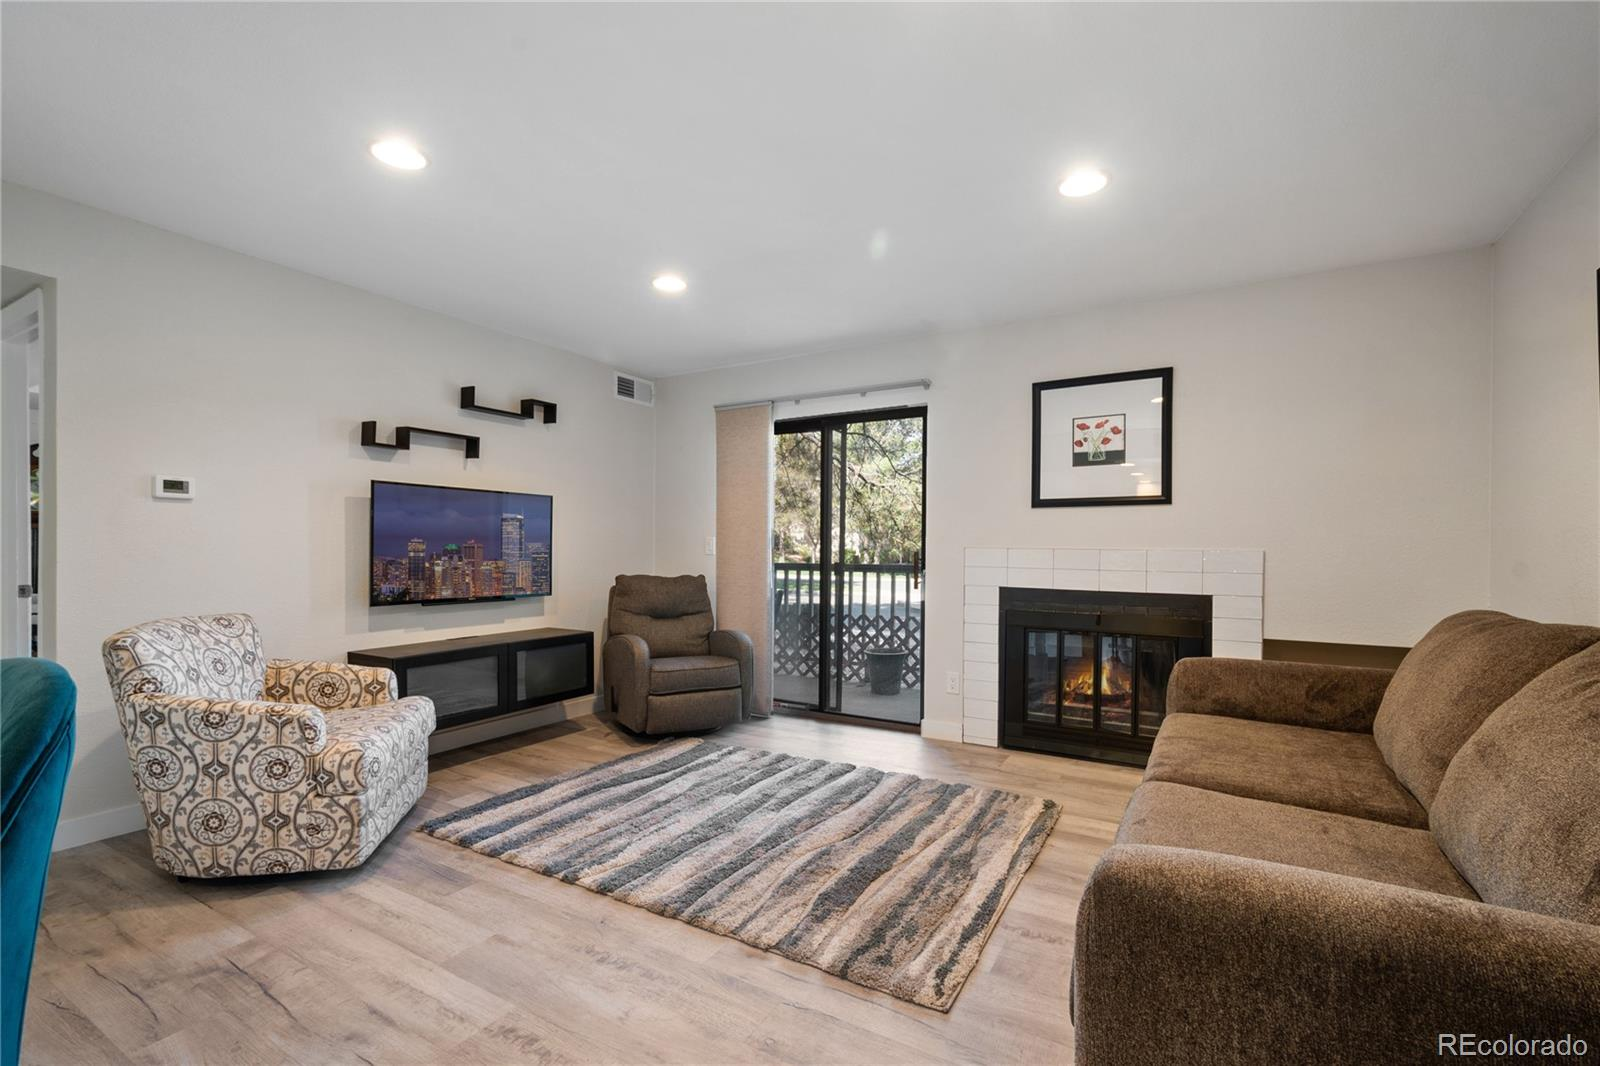 MLS# 7942080 - 5 - 9680 Brentwood Way #101, Westminster, CO 80021